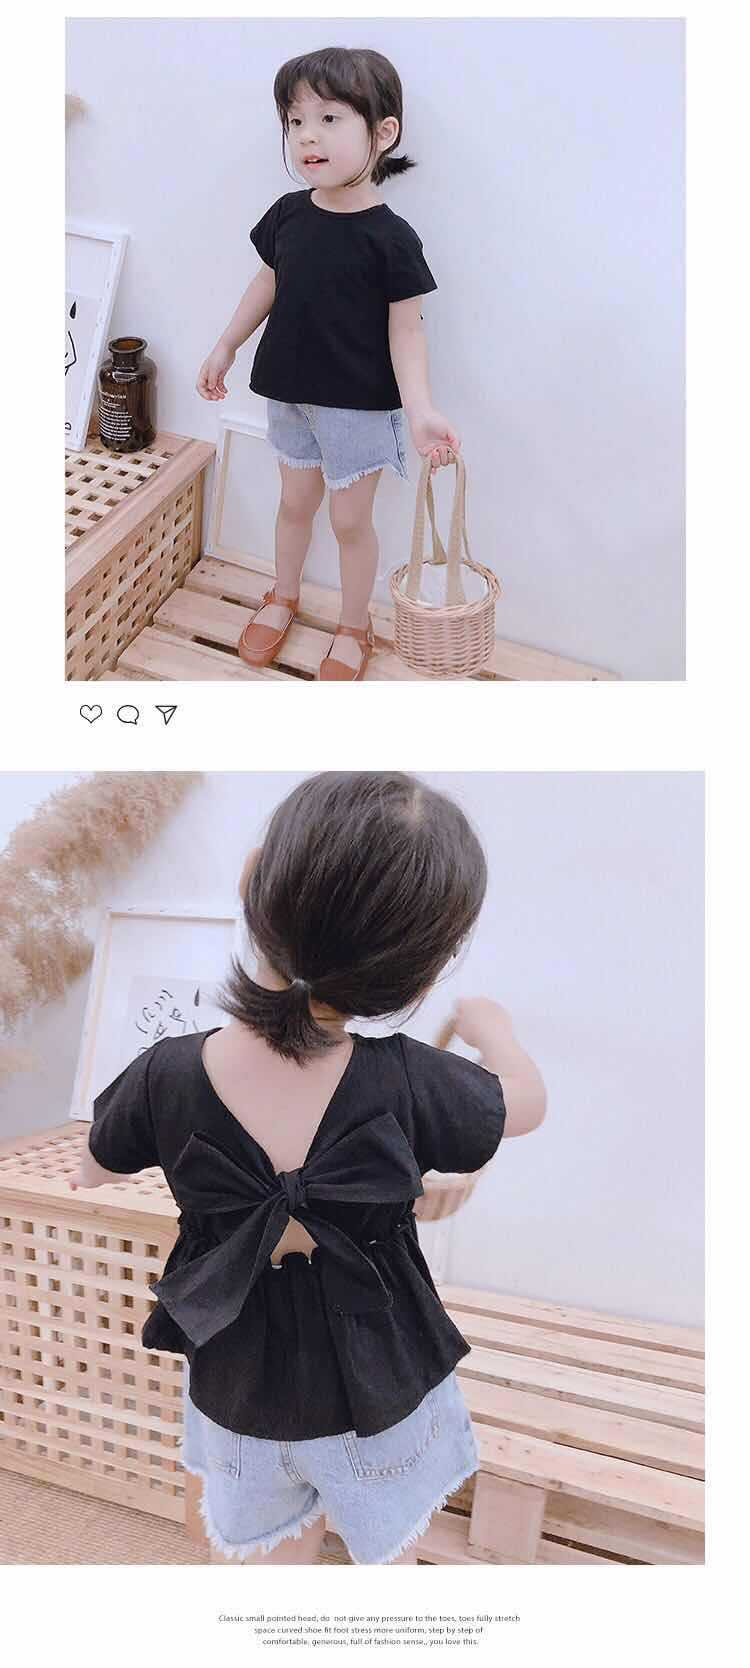 Baby GIRL'S T-shirt 2019 New Style Summer Wear Baby Bow GIRL'S Shirt Children Short-sleeved Top Fashion